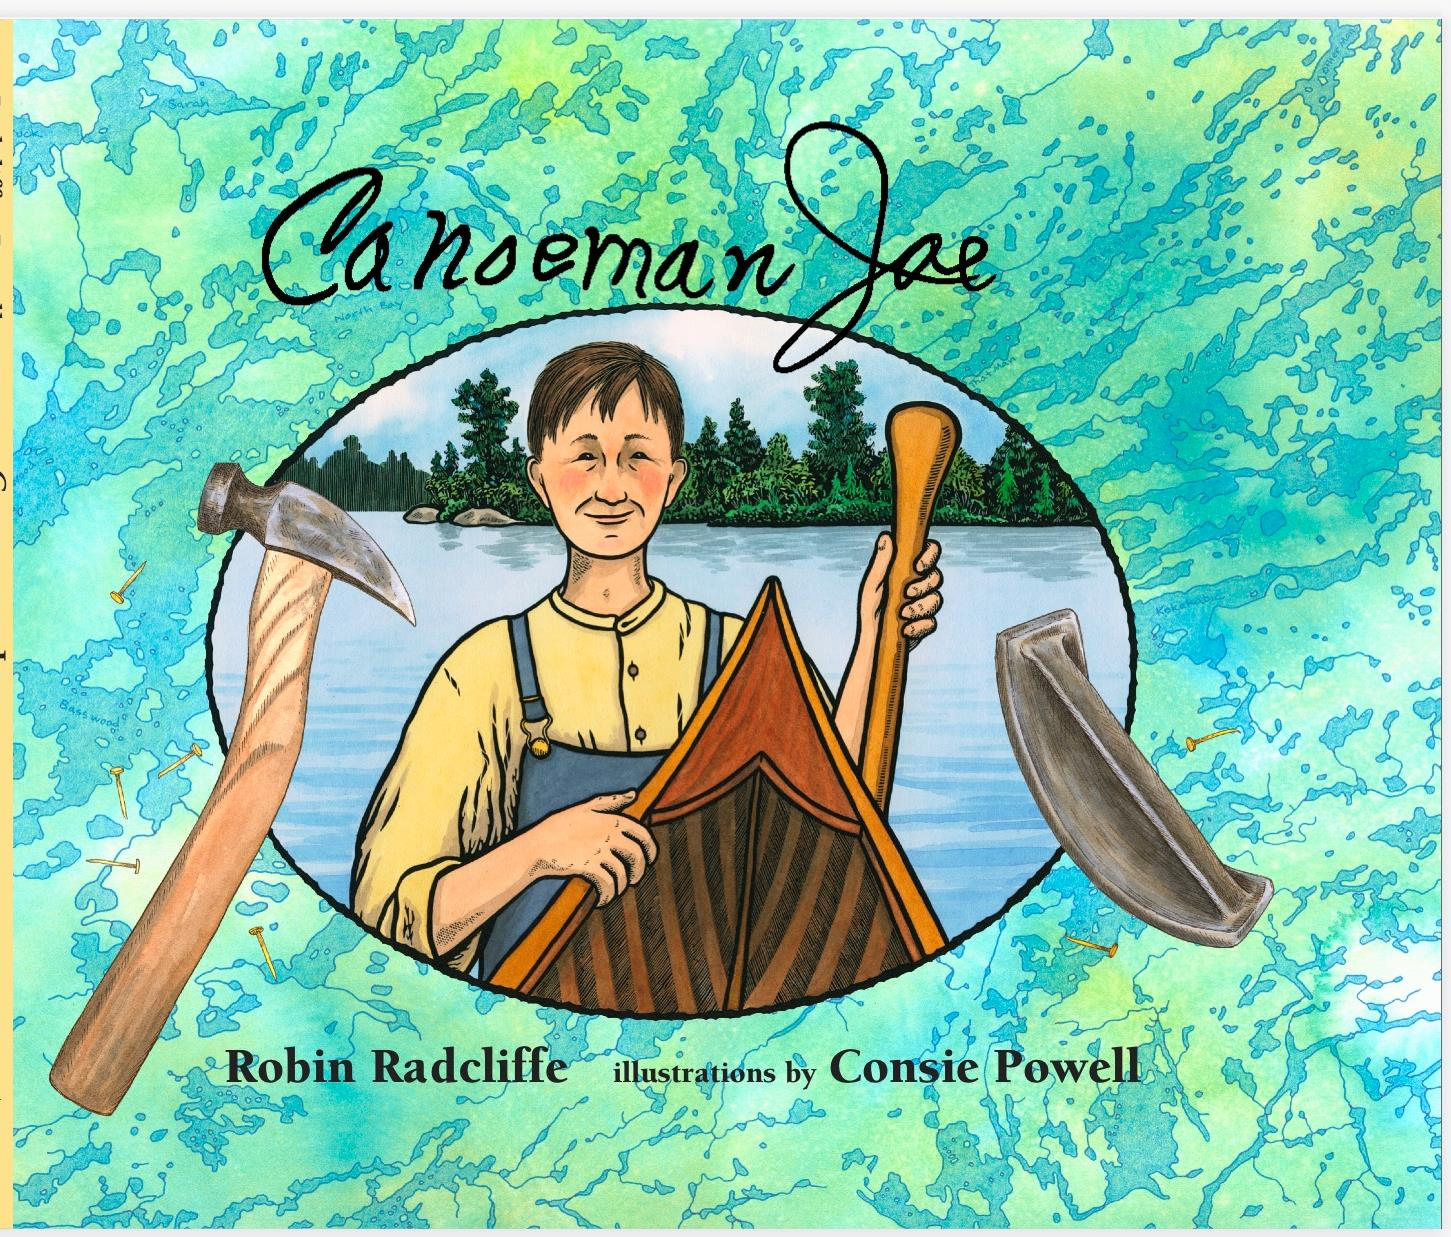 Paddle Minnesota: Interview with author Robin Radcliffe and illustrator Consie Powell